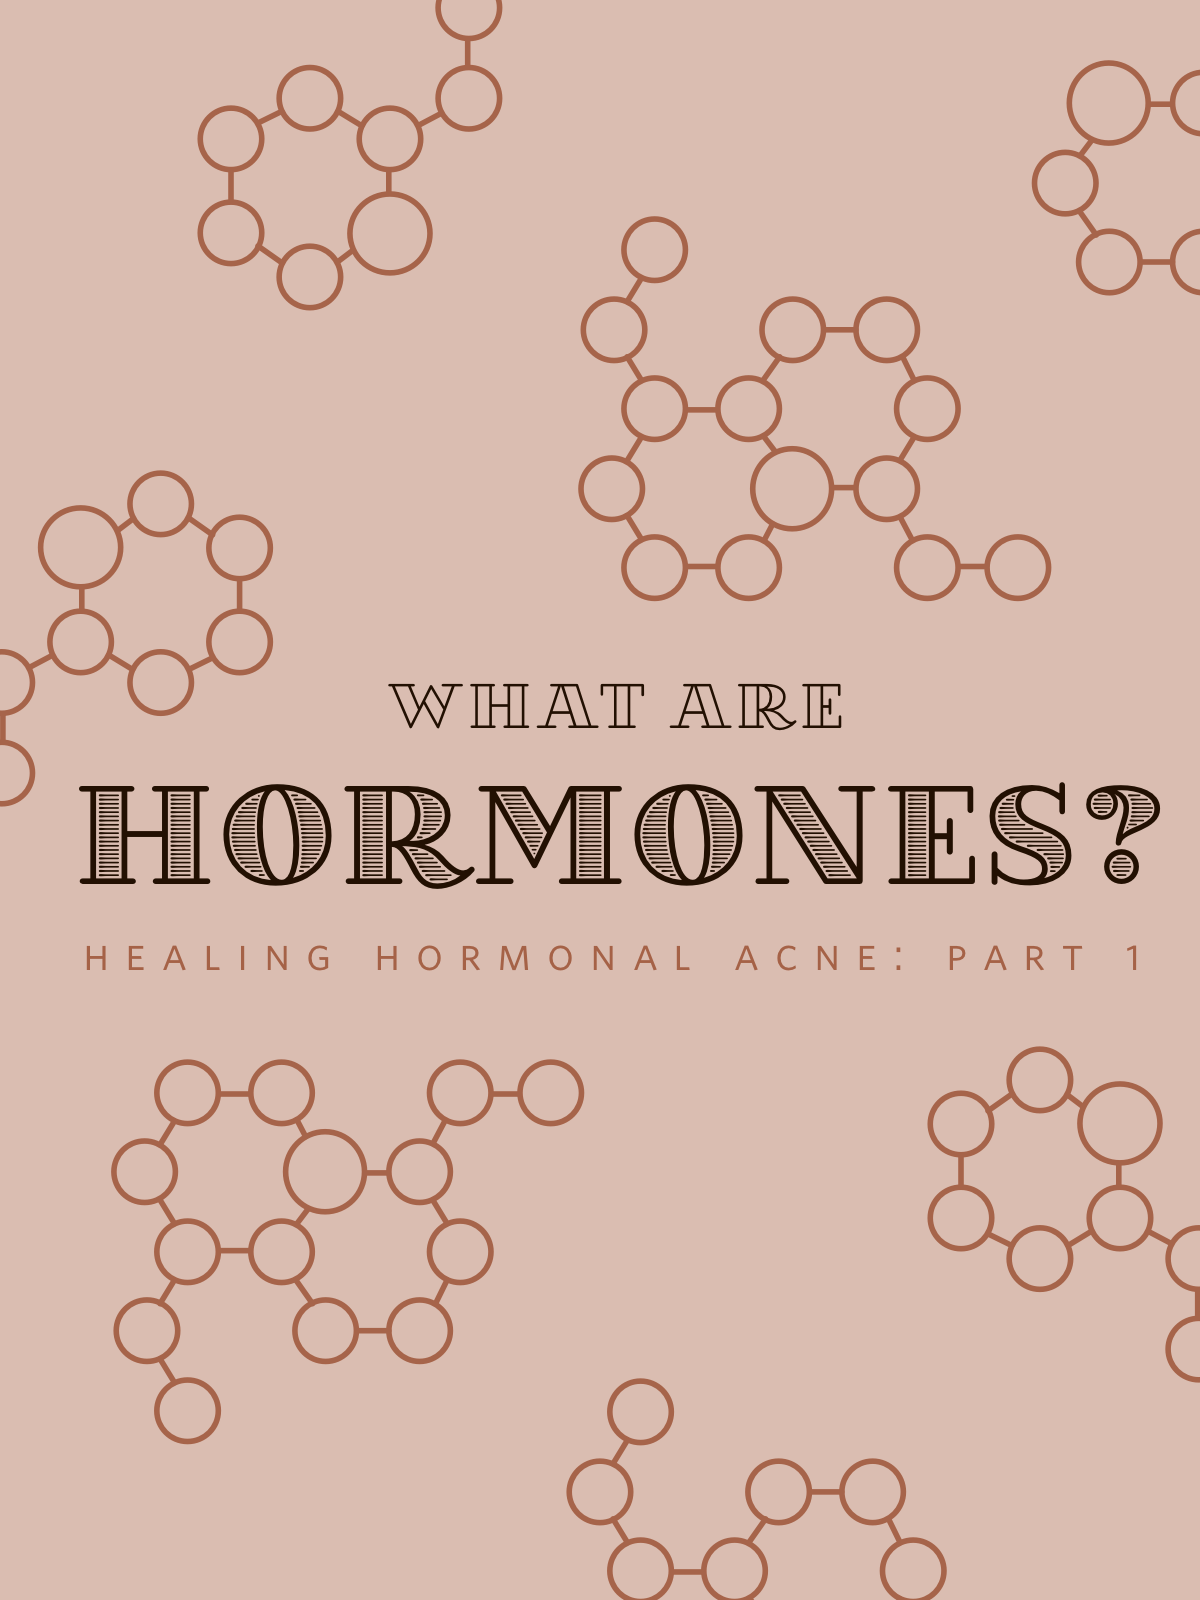 Healing hormonal acne part 1: What are Hormones? | Go Messy or Go Hungry